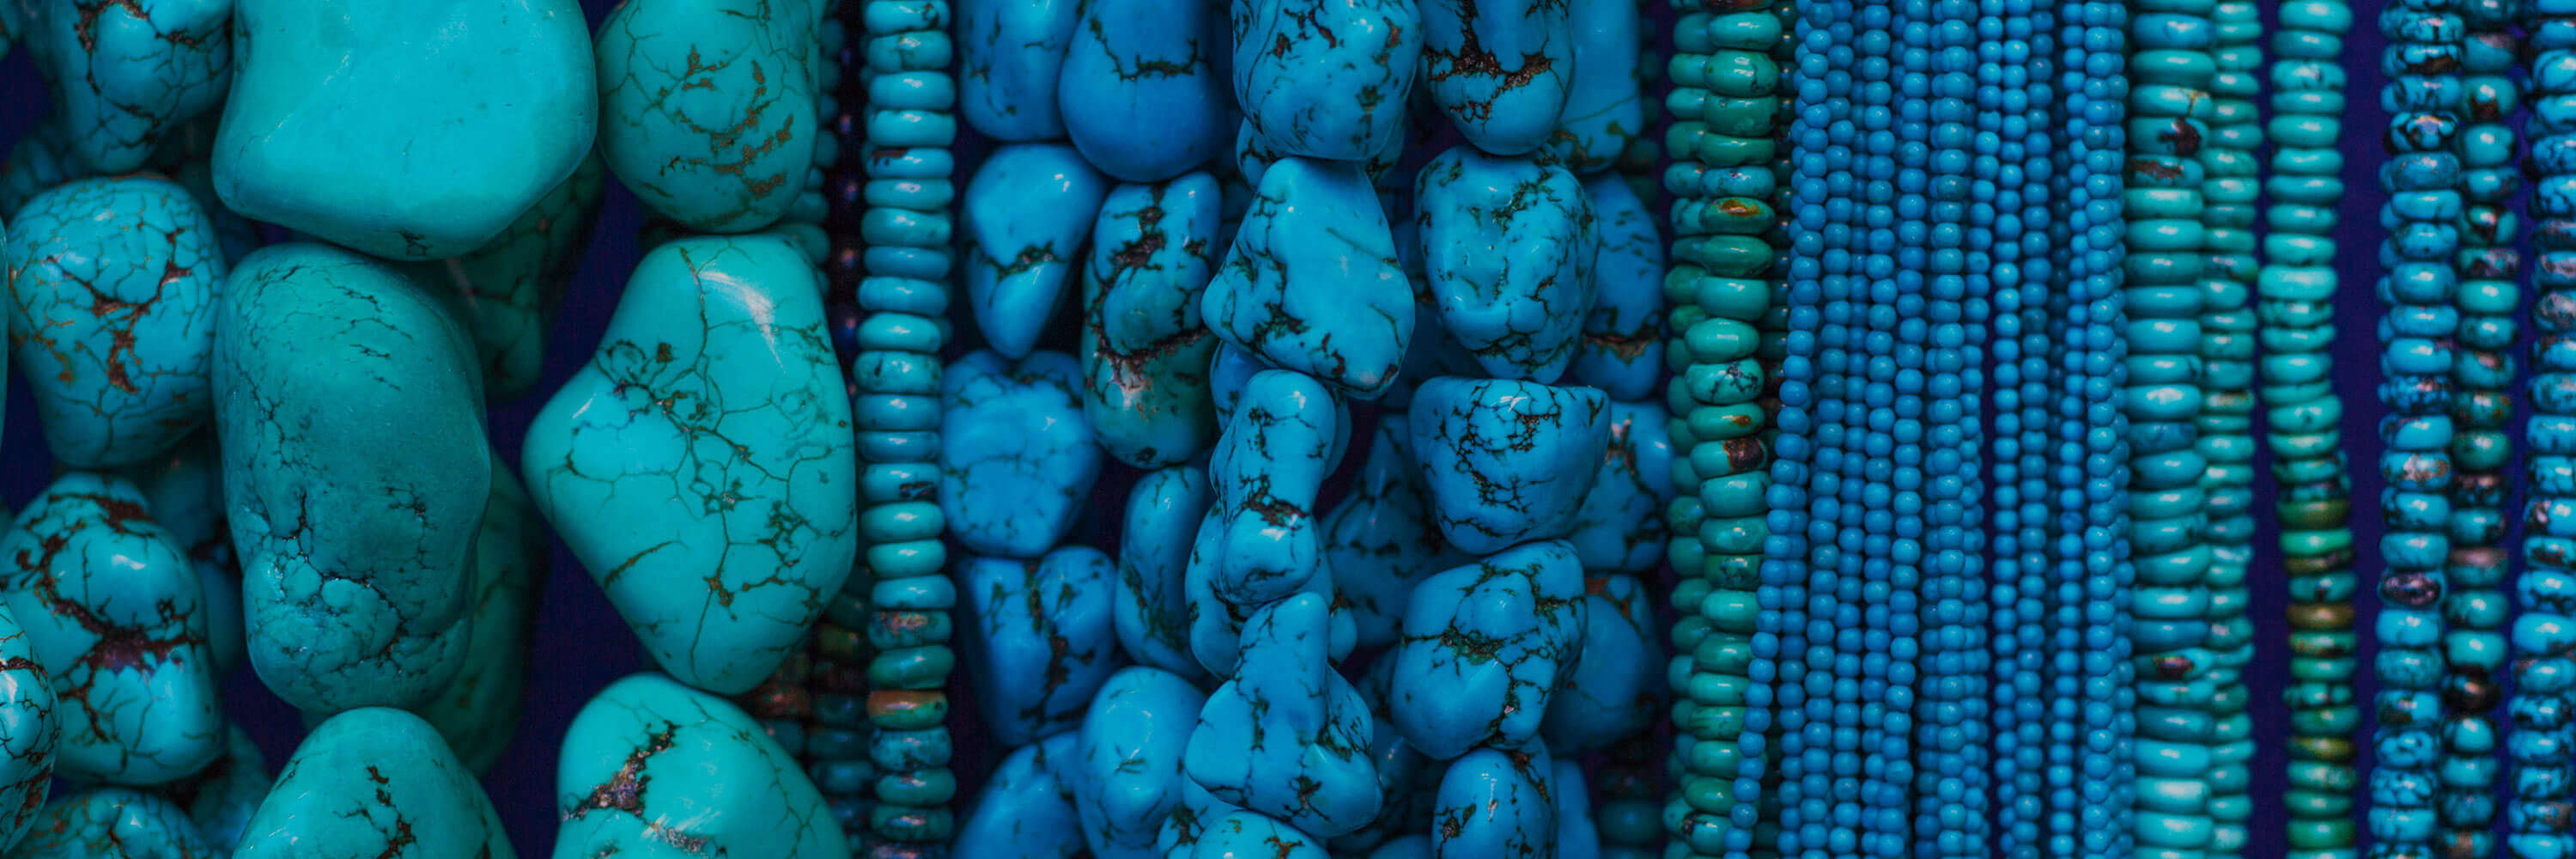 Several strings of blue and turquoise beads in various sizes